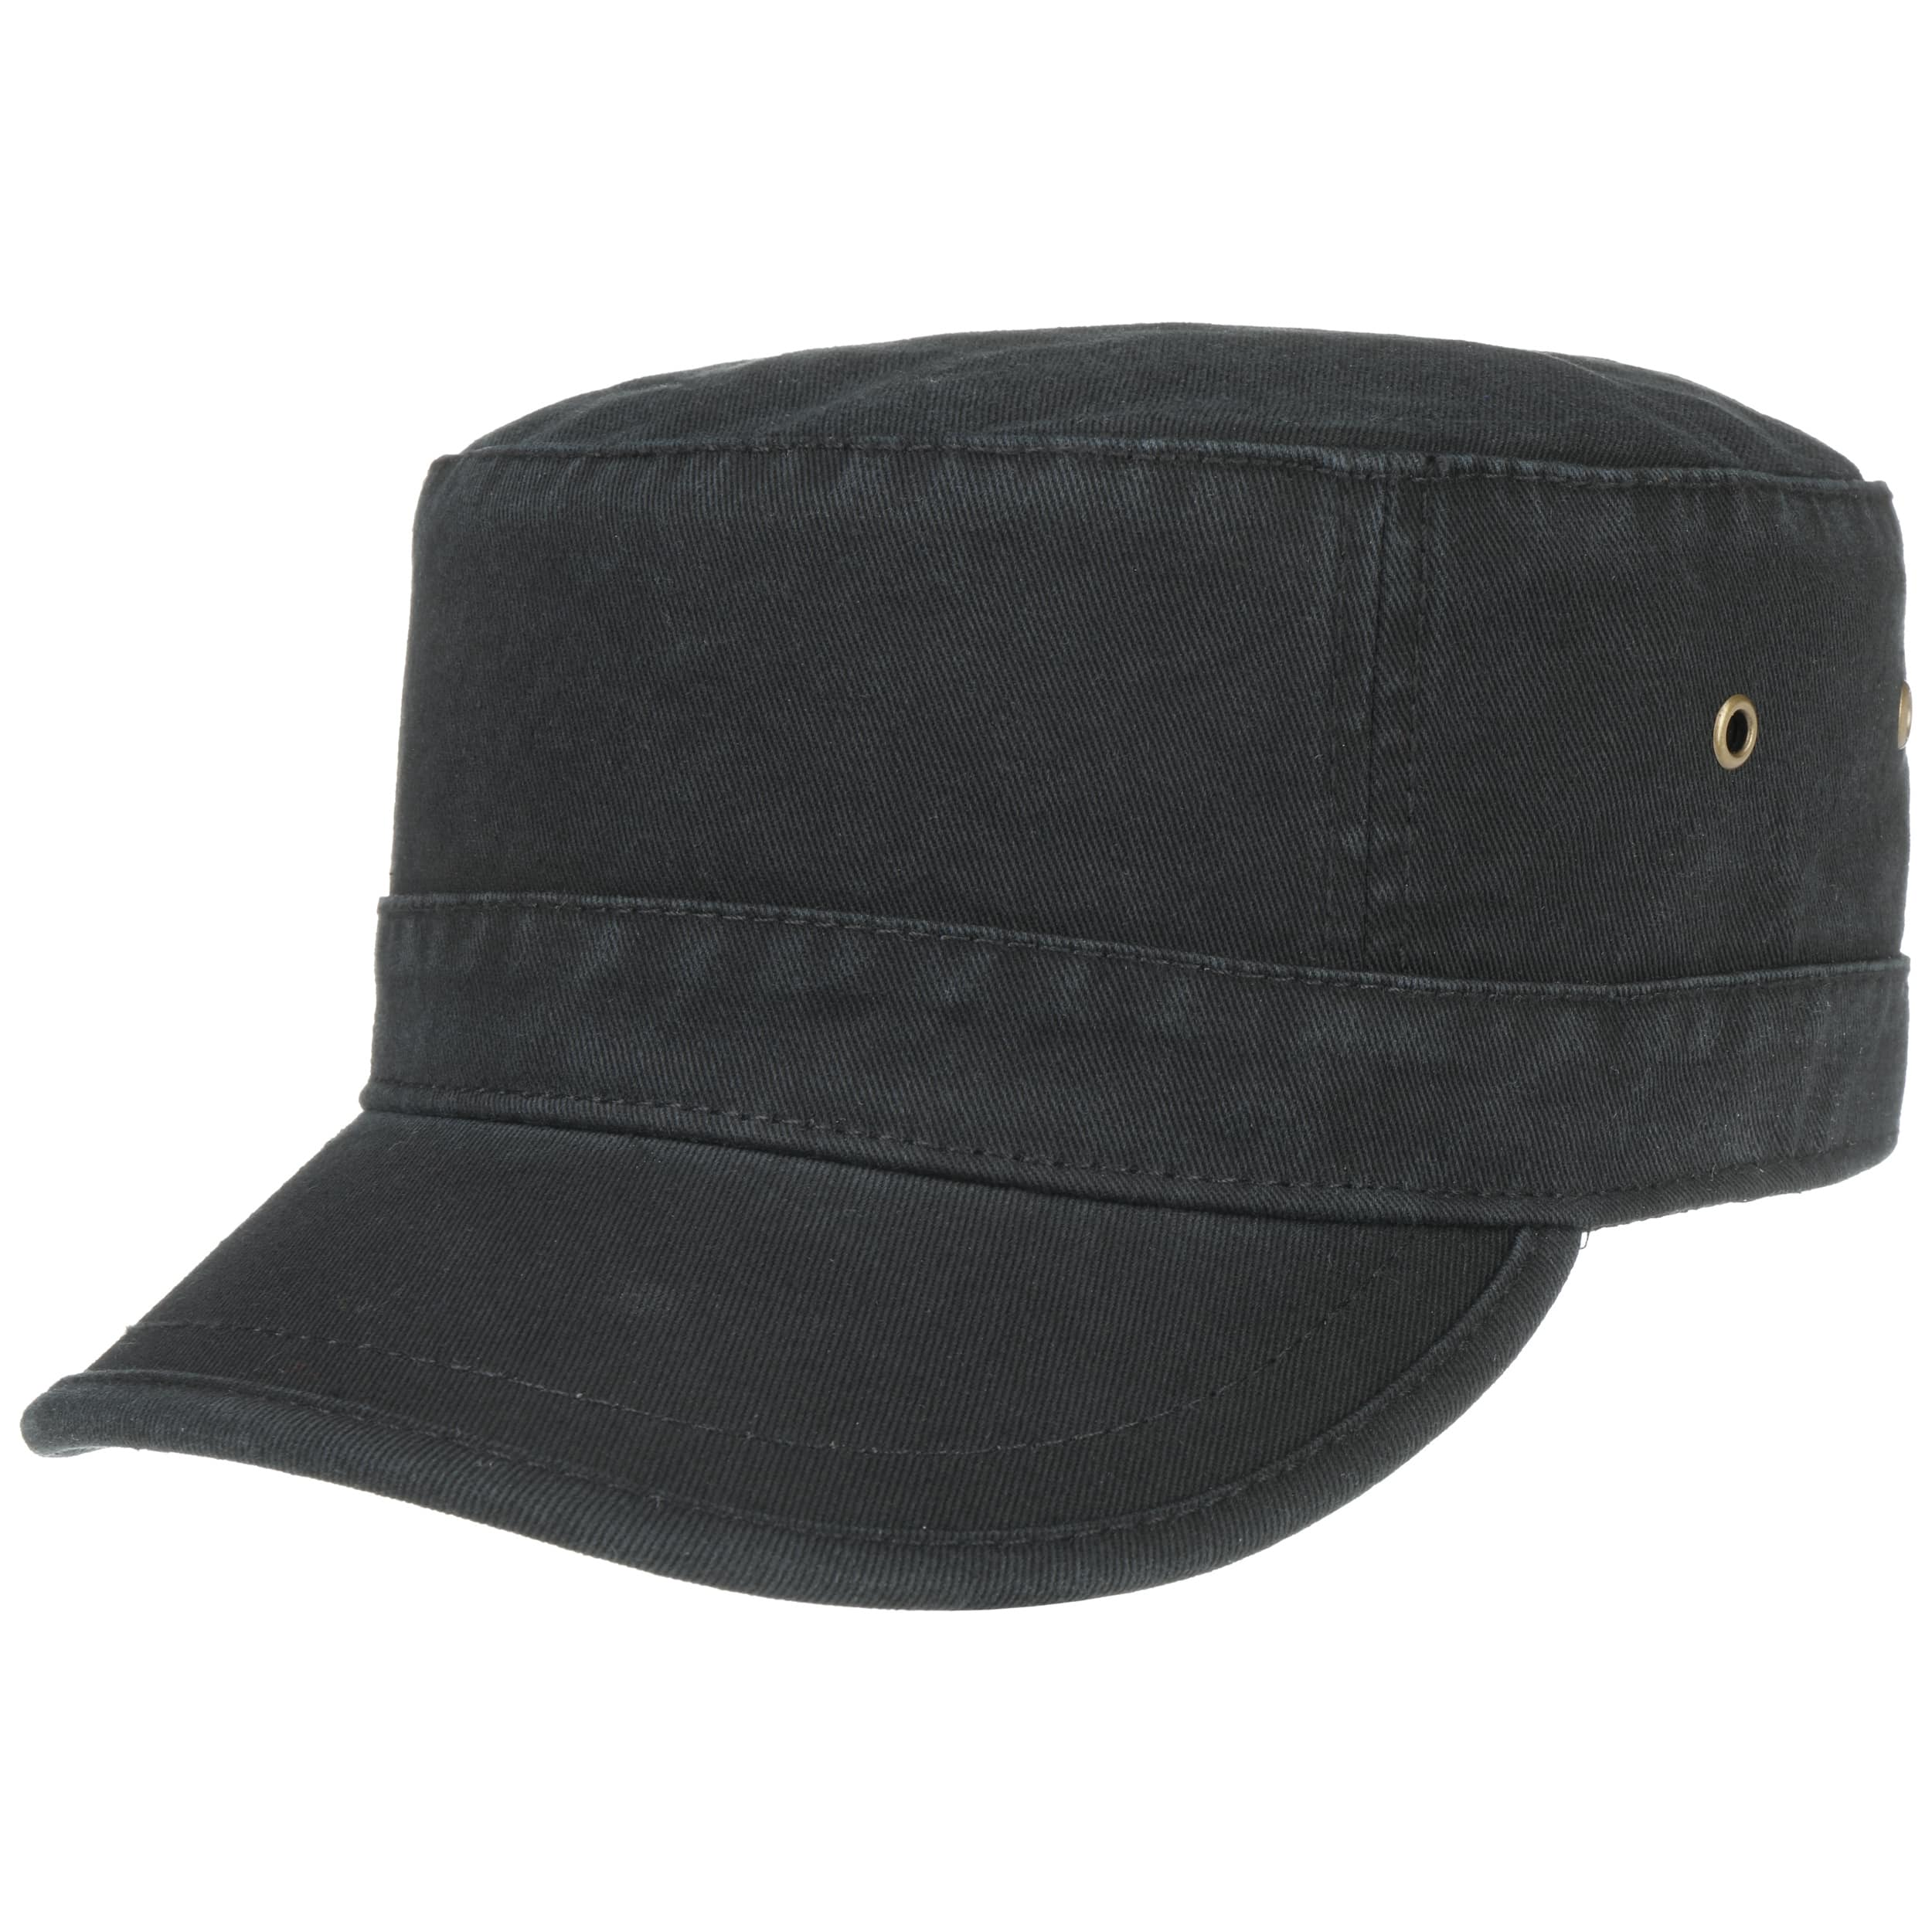 ... Urban Army Cap - black 5 8d1d72300